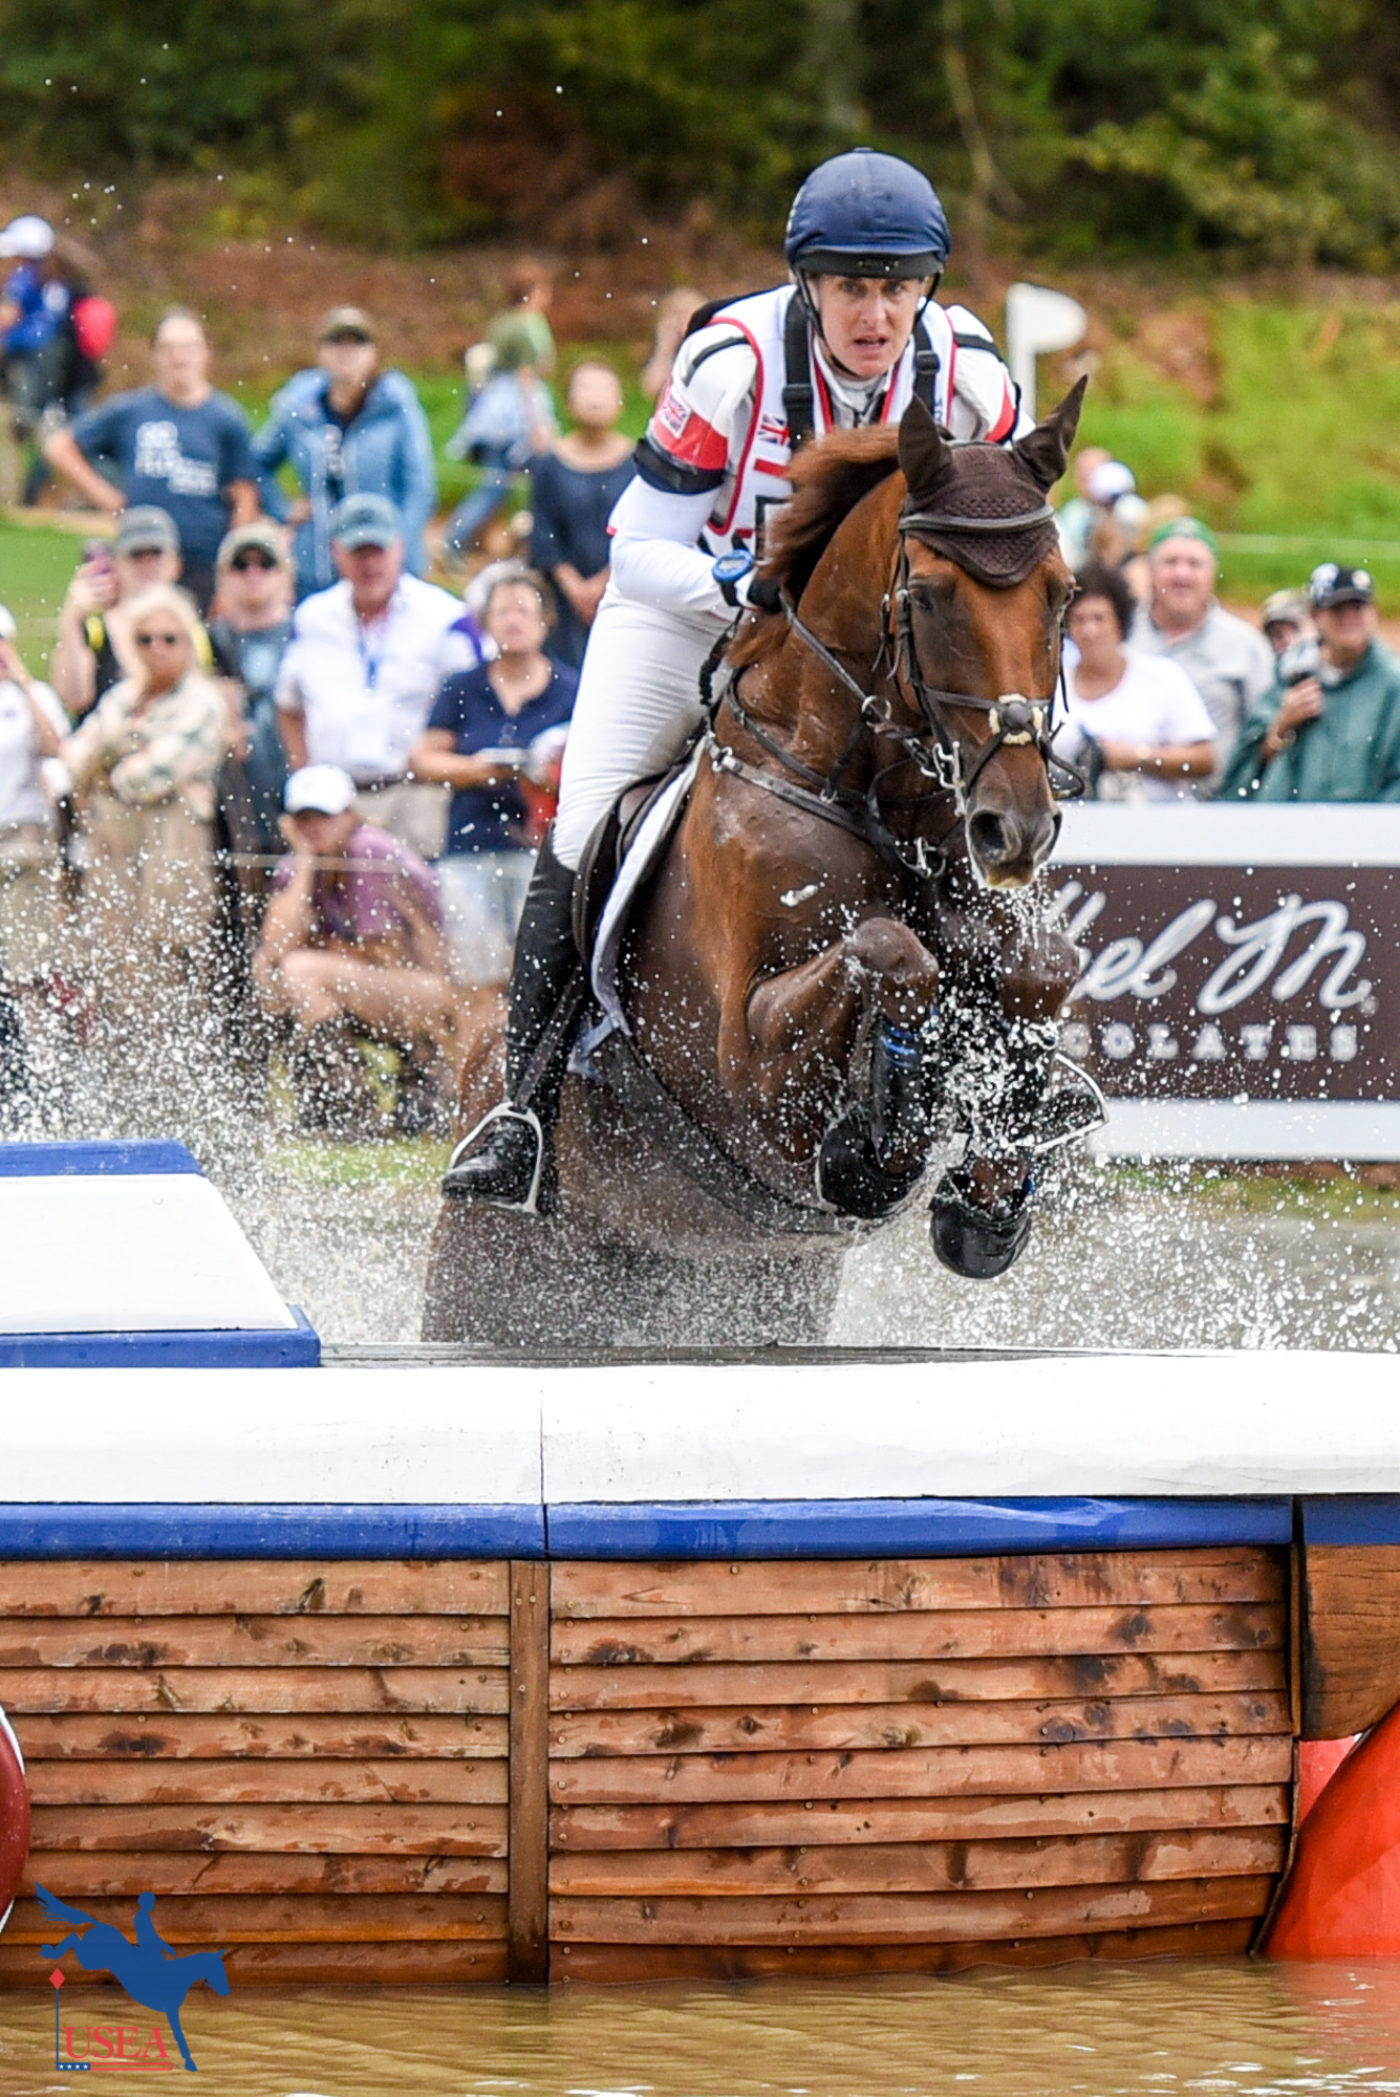 14th - Kristina Cook and Billy The Red (GBR)